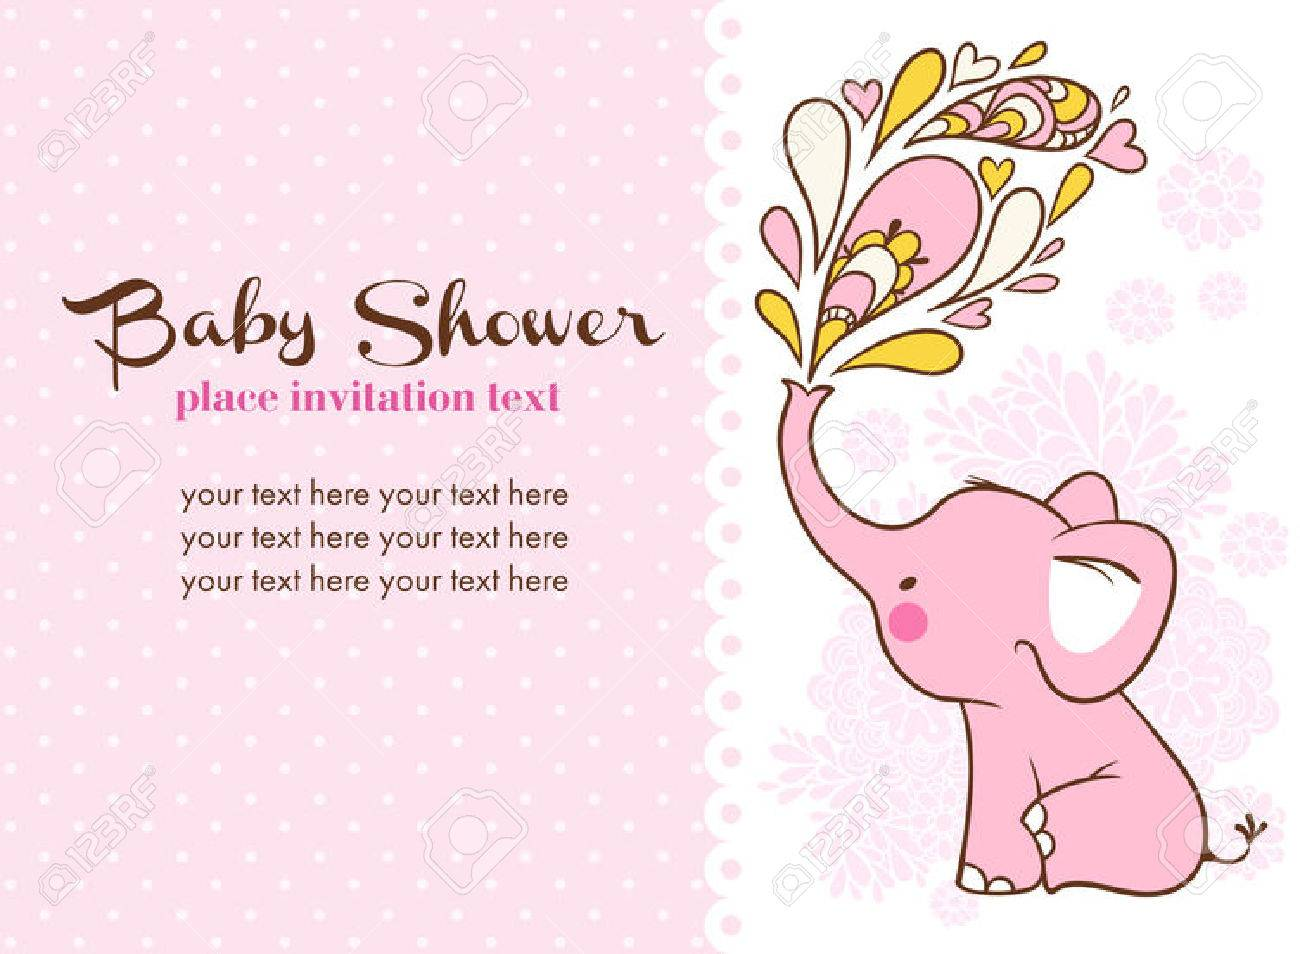 Children illustration with elephant and place for your text. - 48833577